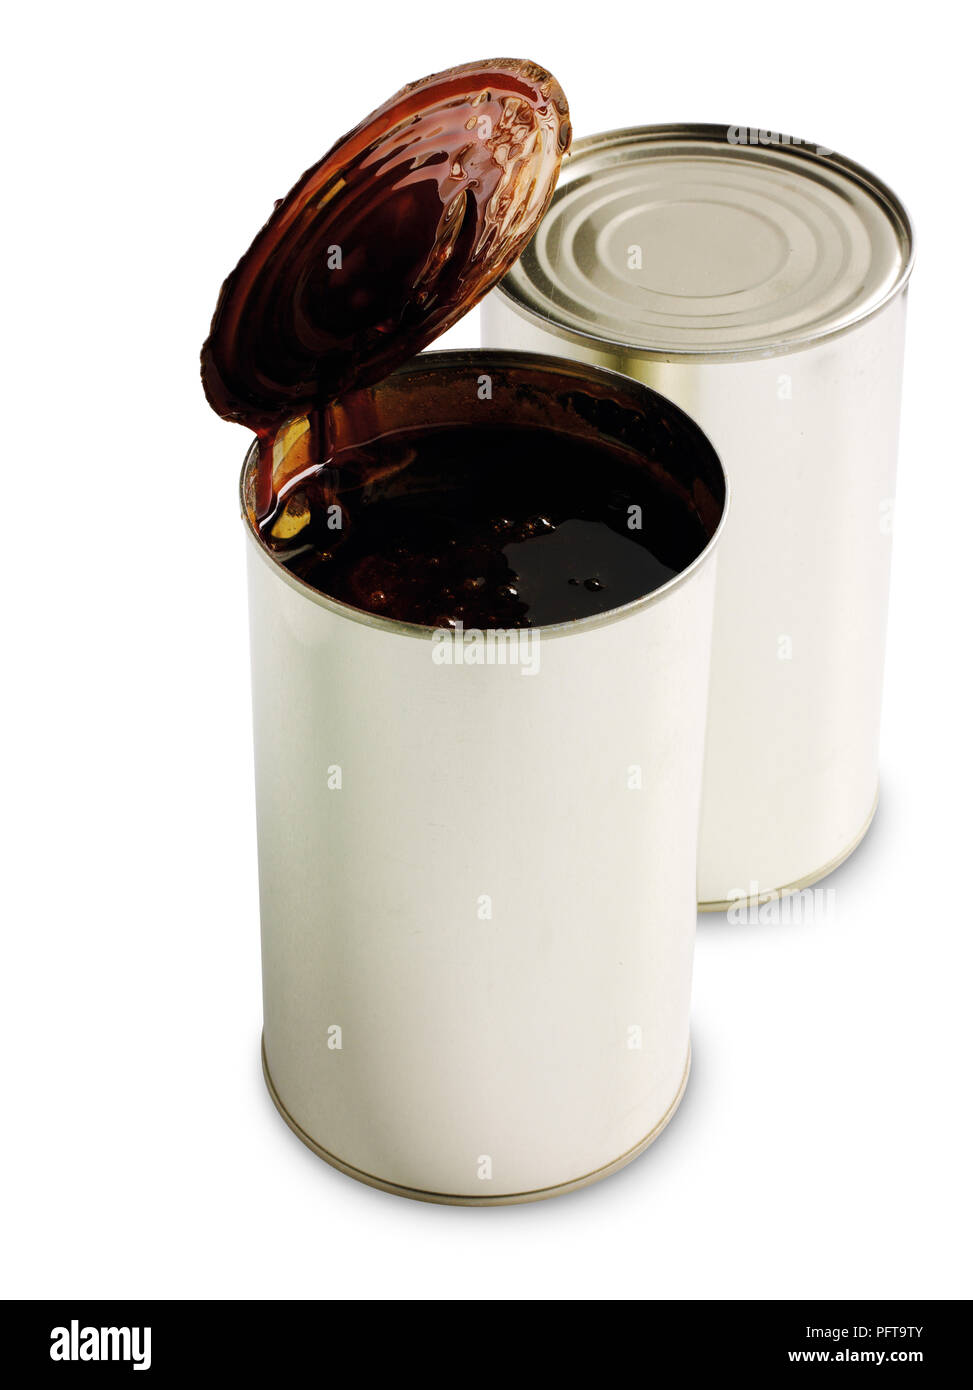 Tins of liquid malt extract for brewing beer - Stock Image